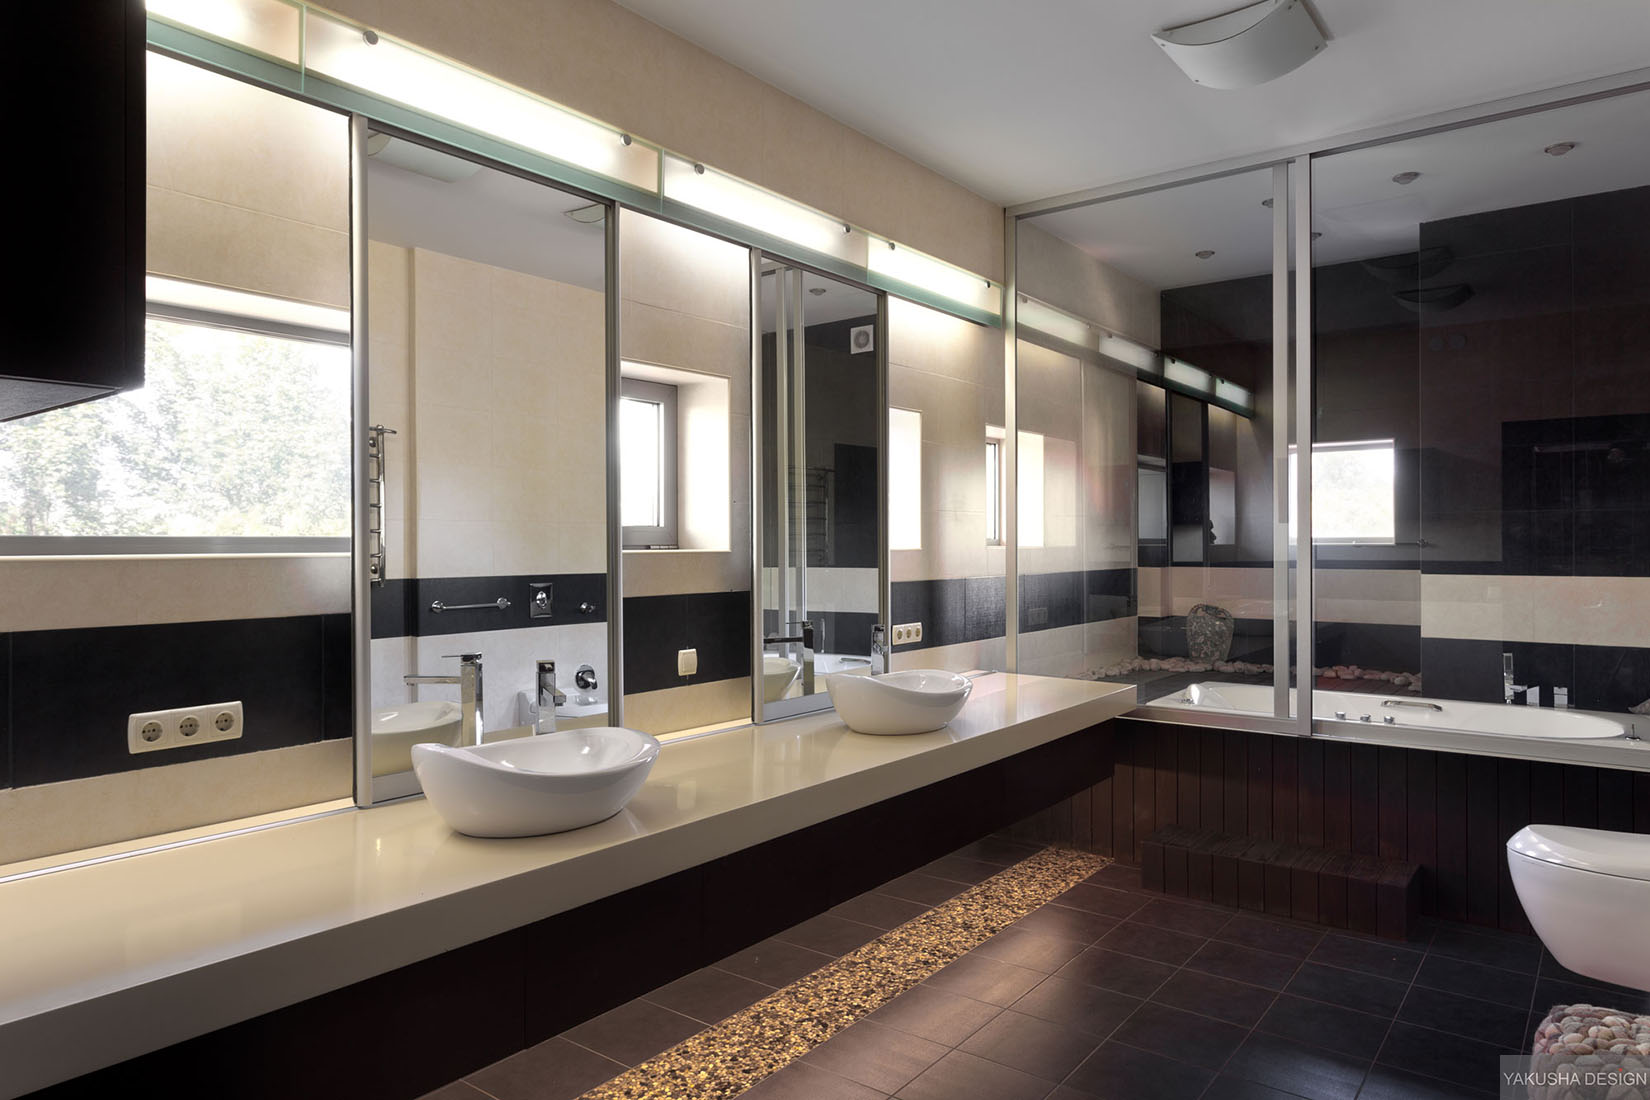 His And Hers Twin Sinks In Modern Mirrored Bathroom With Large Tub Interior Design Ideas